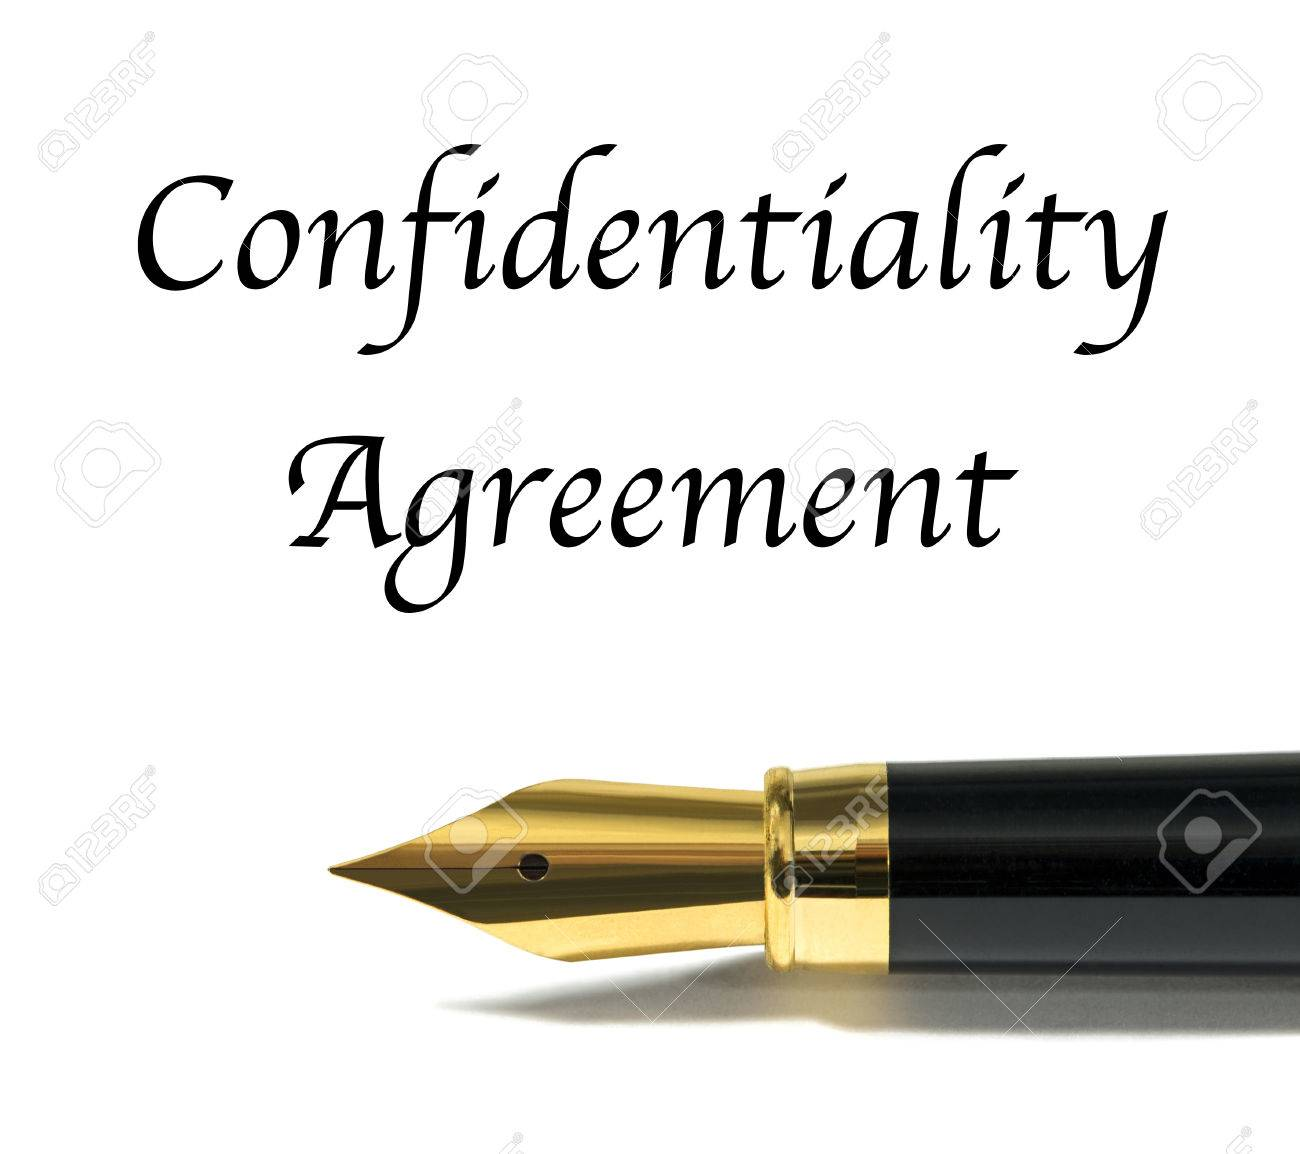 Doc585650 Confidentiality Agreement Confidentiality Agreement – Printable Confidentiality Agreement